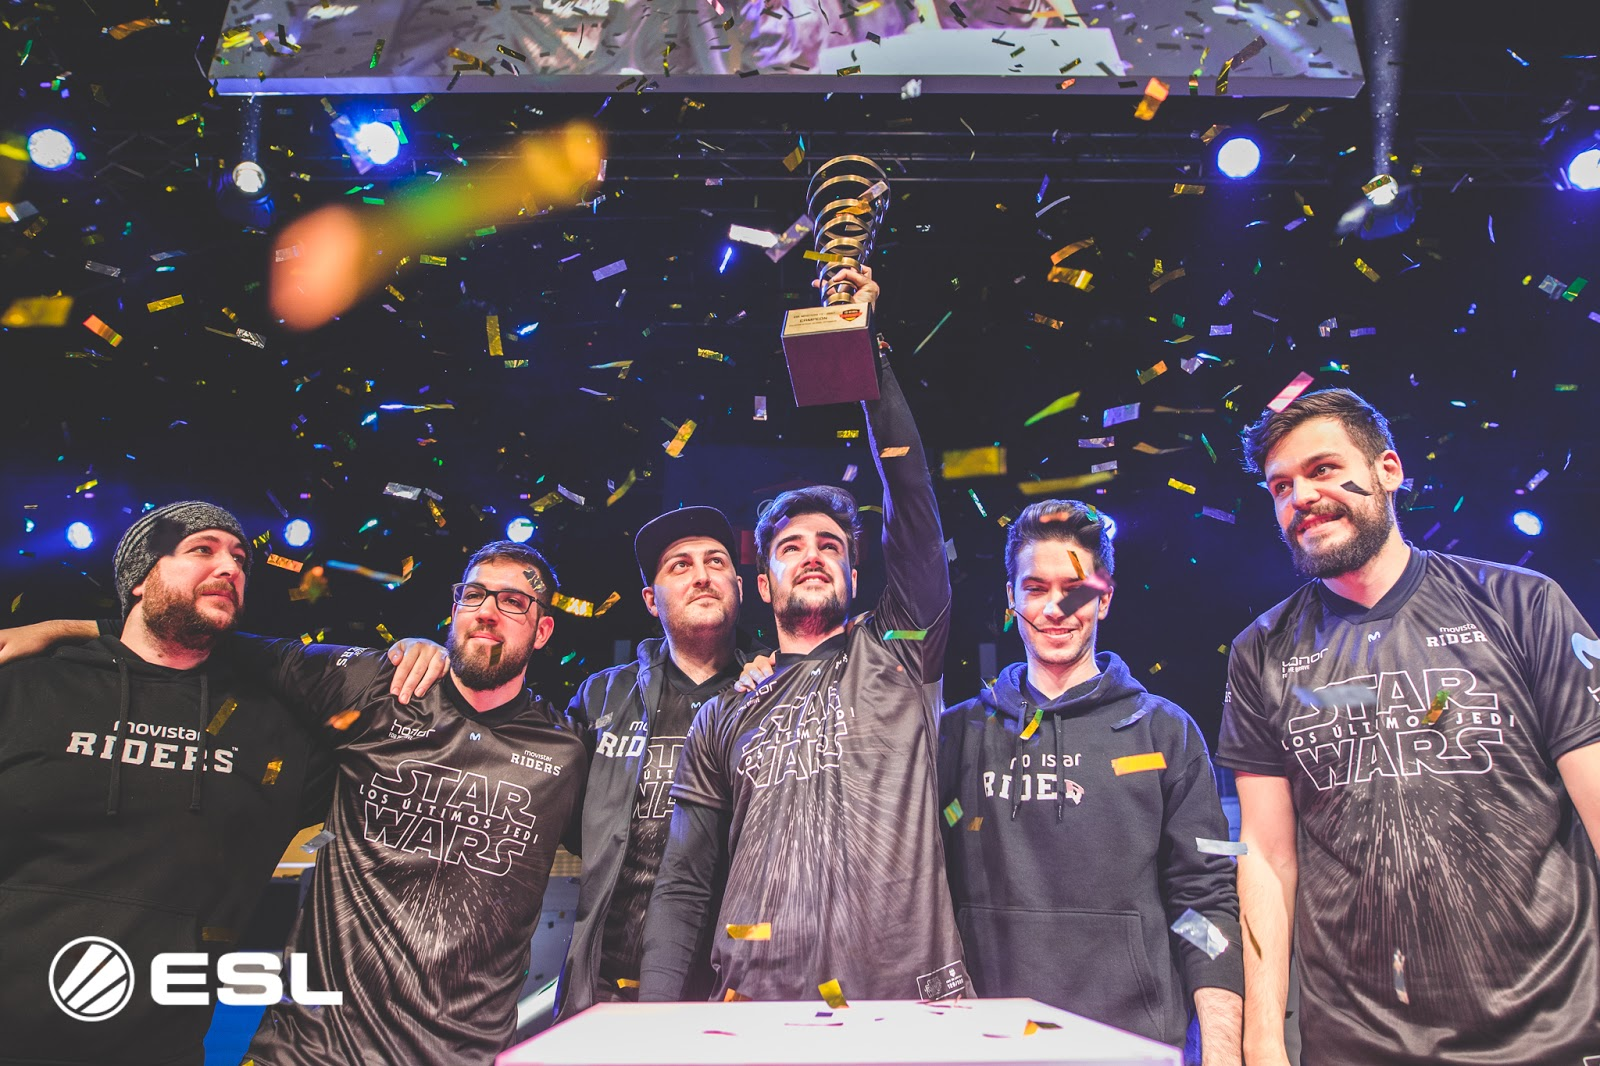 Movistar Riders se alza como campeón nacional de Counter-Strike: Global Offensive y consigue una plaza directa para la liga internacional MDL